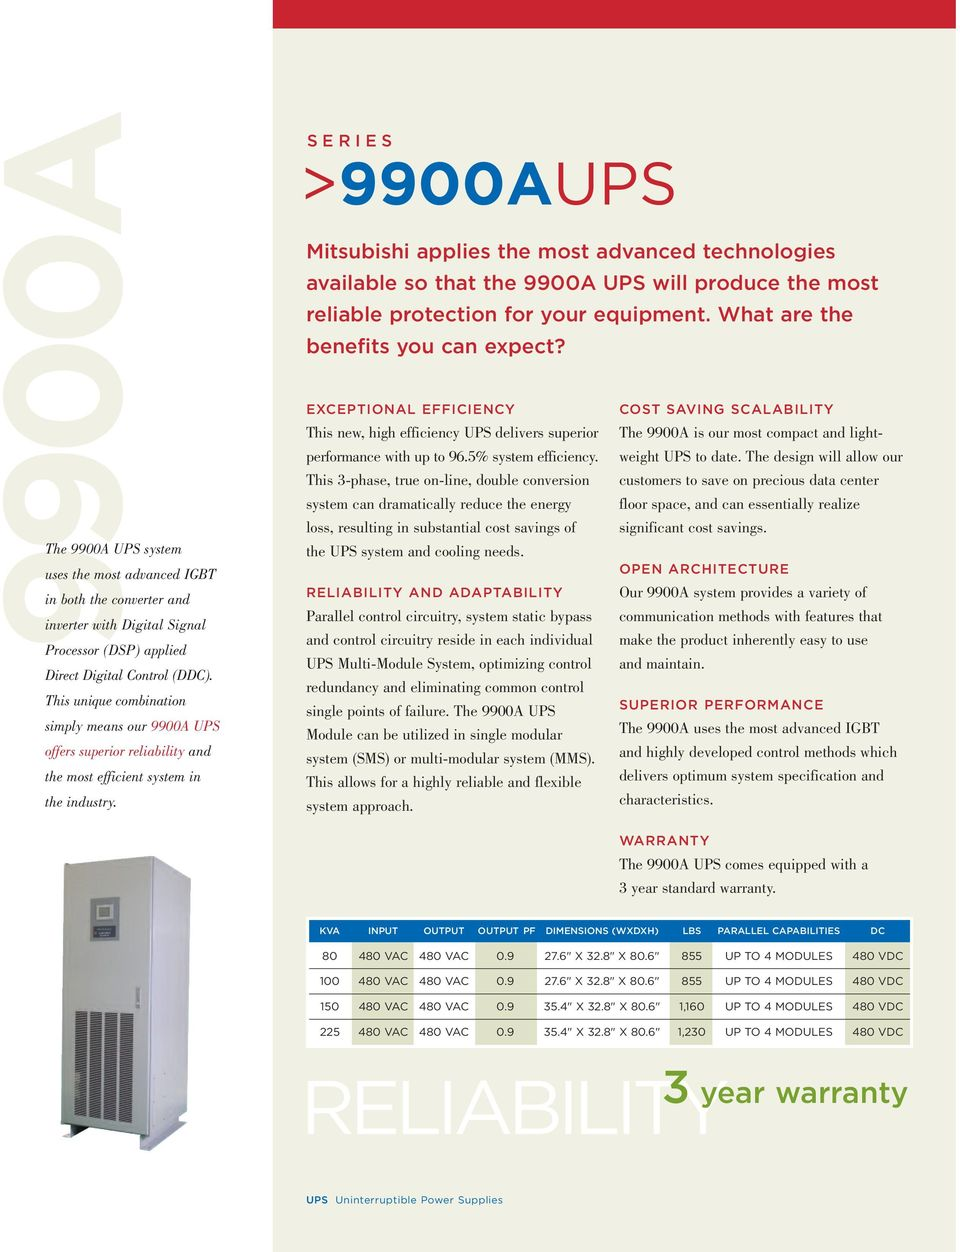 SERIES >9900AUPS Mitsubishi applies the most advanced technologies available so that the 9900A UPS will produce the most reliable protection for your equipment. What are the benefits you can expect?